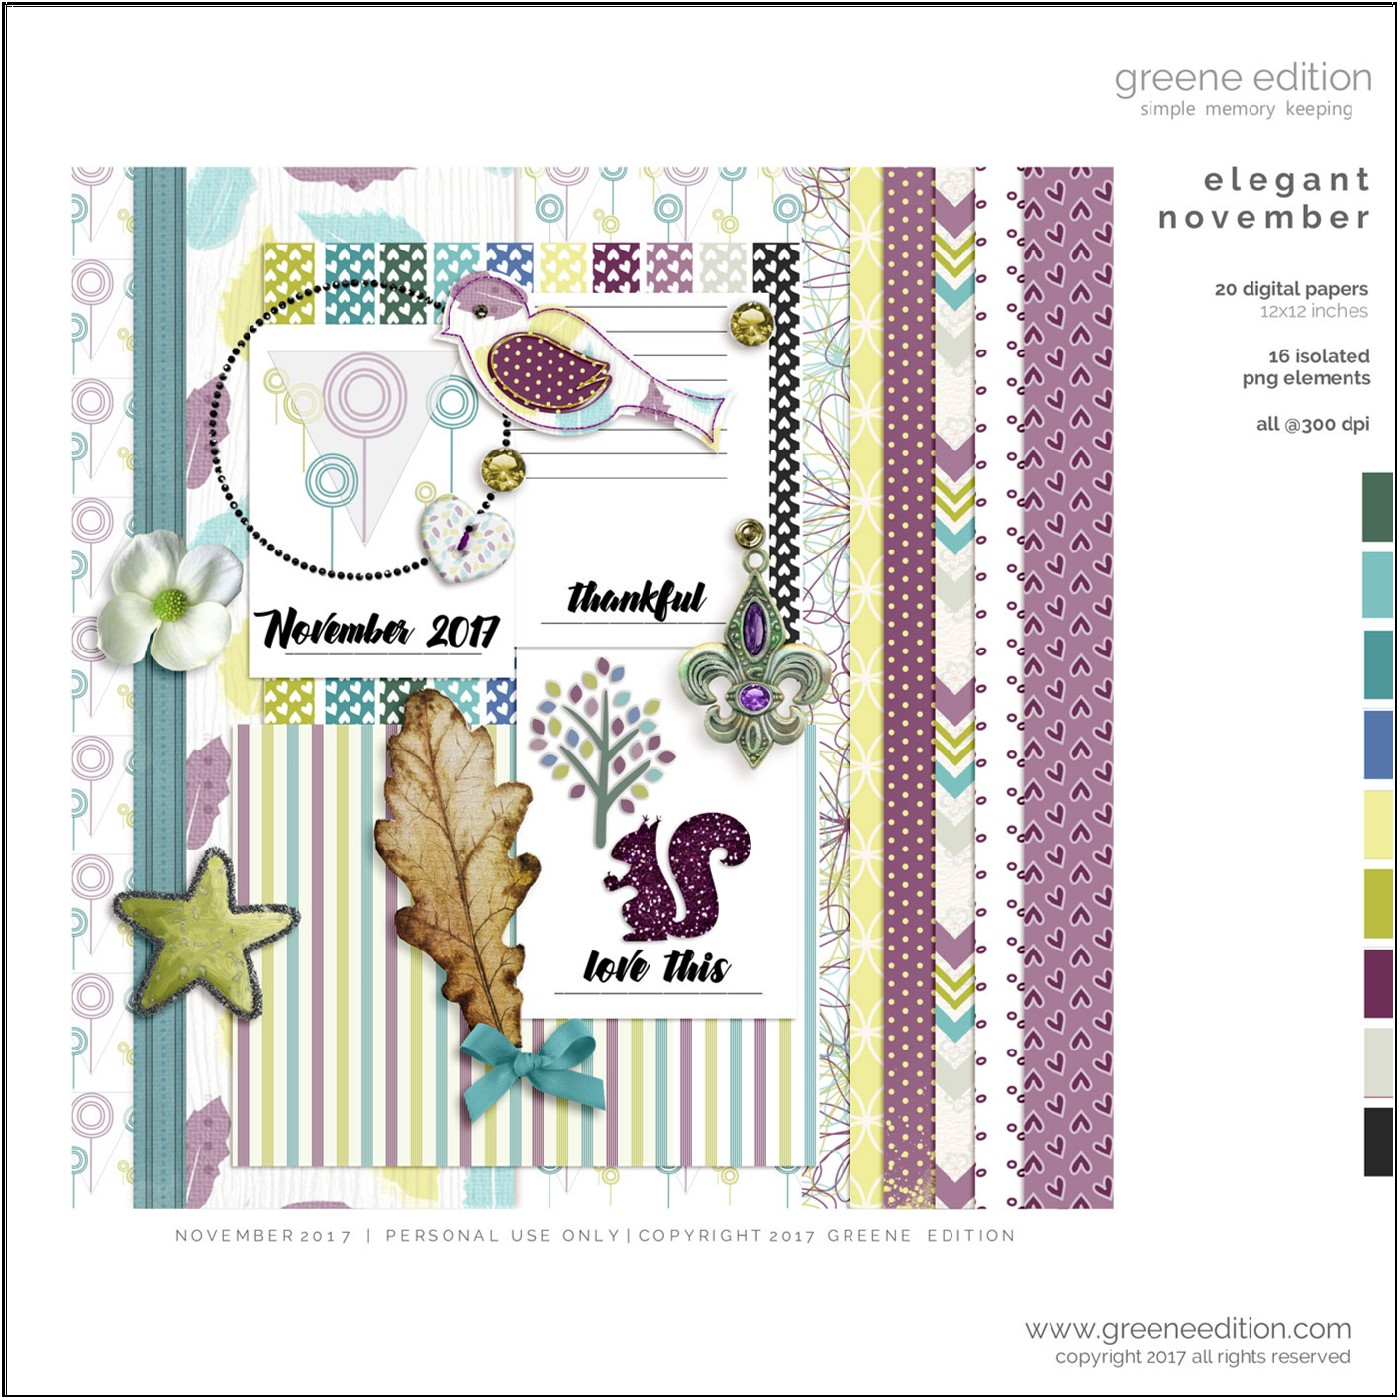 greene edition, digital scrapbooking freebie kit, november 2017